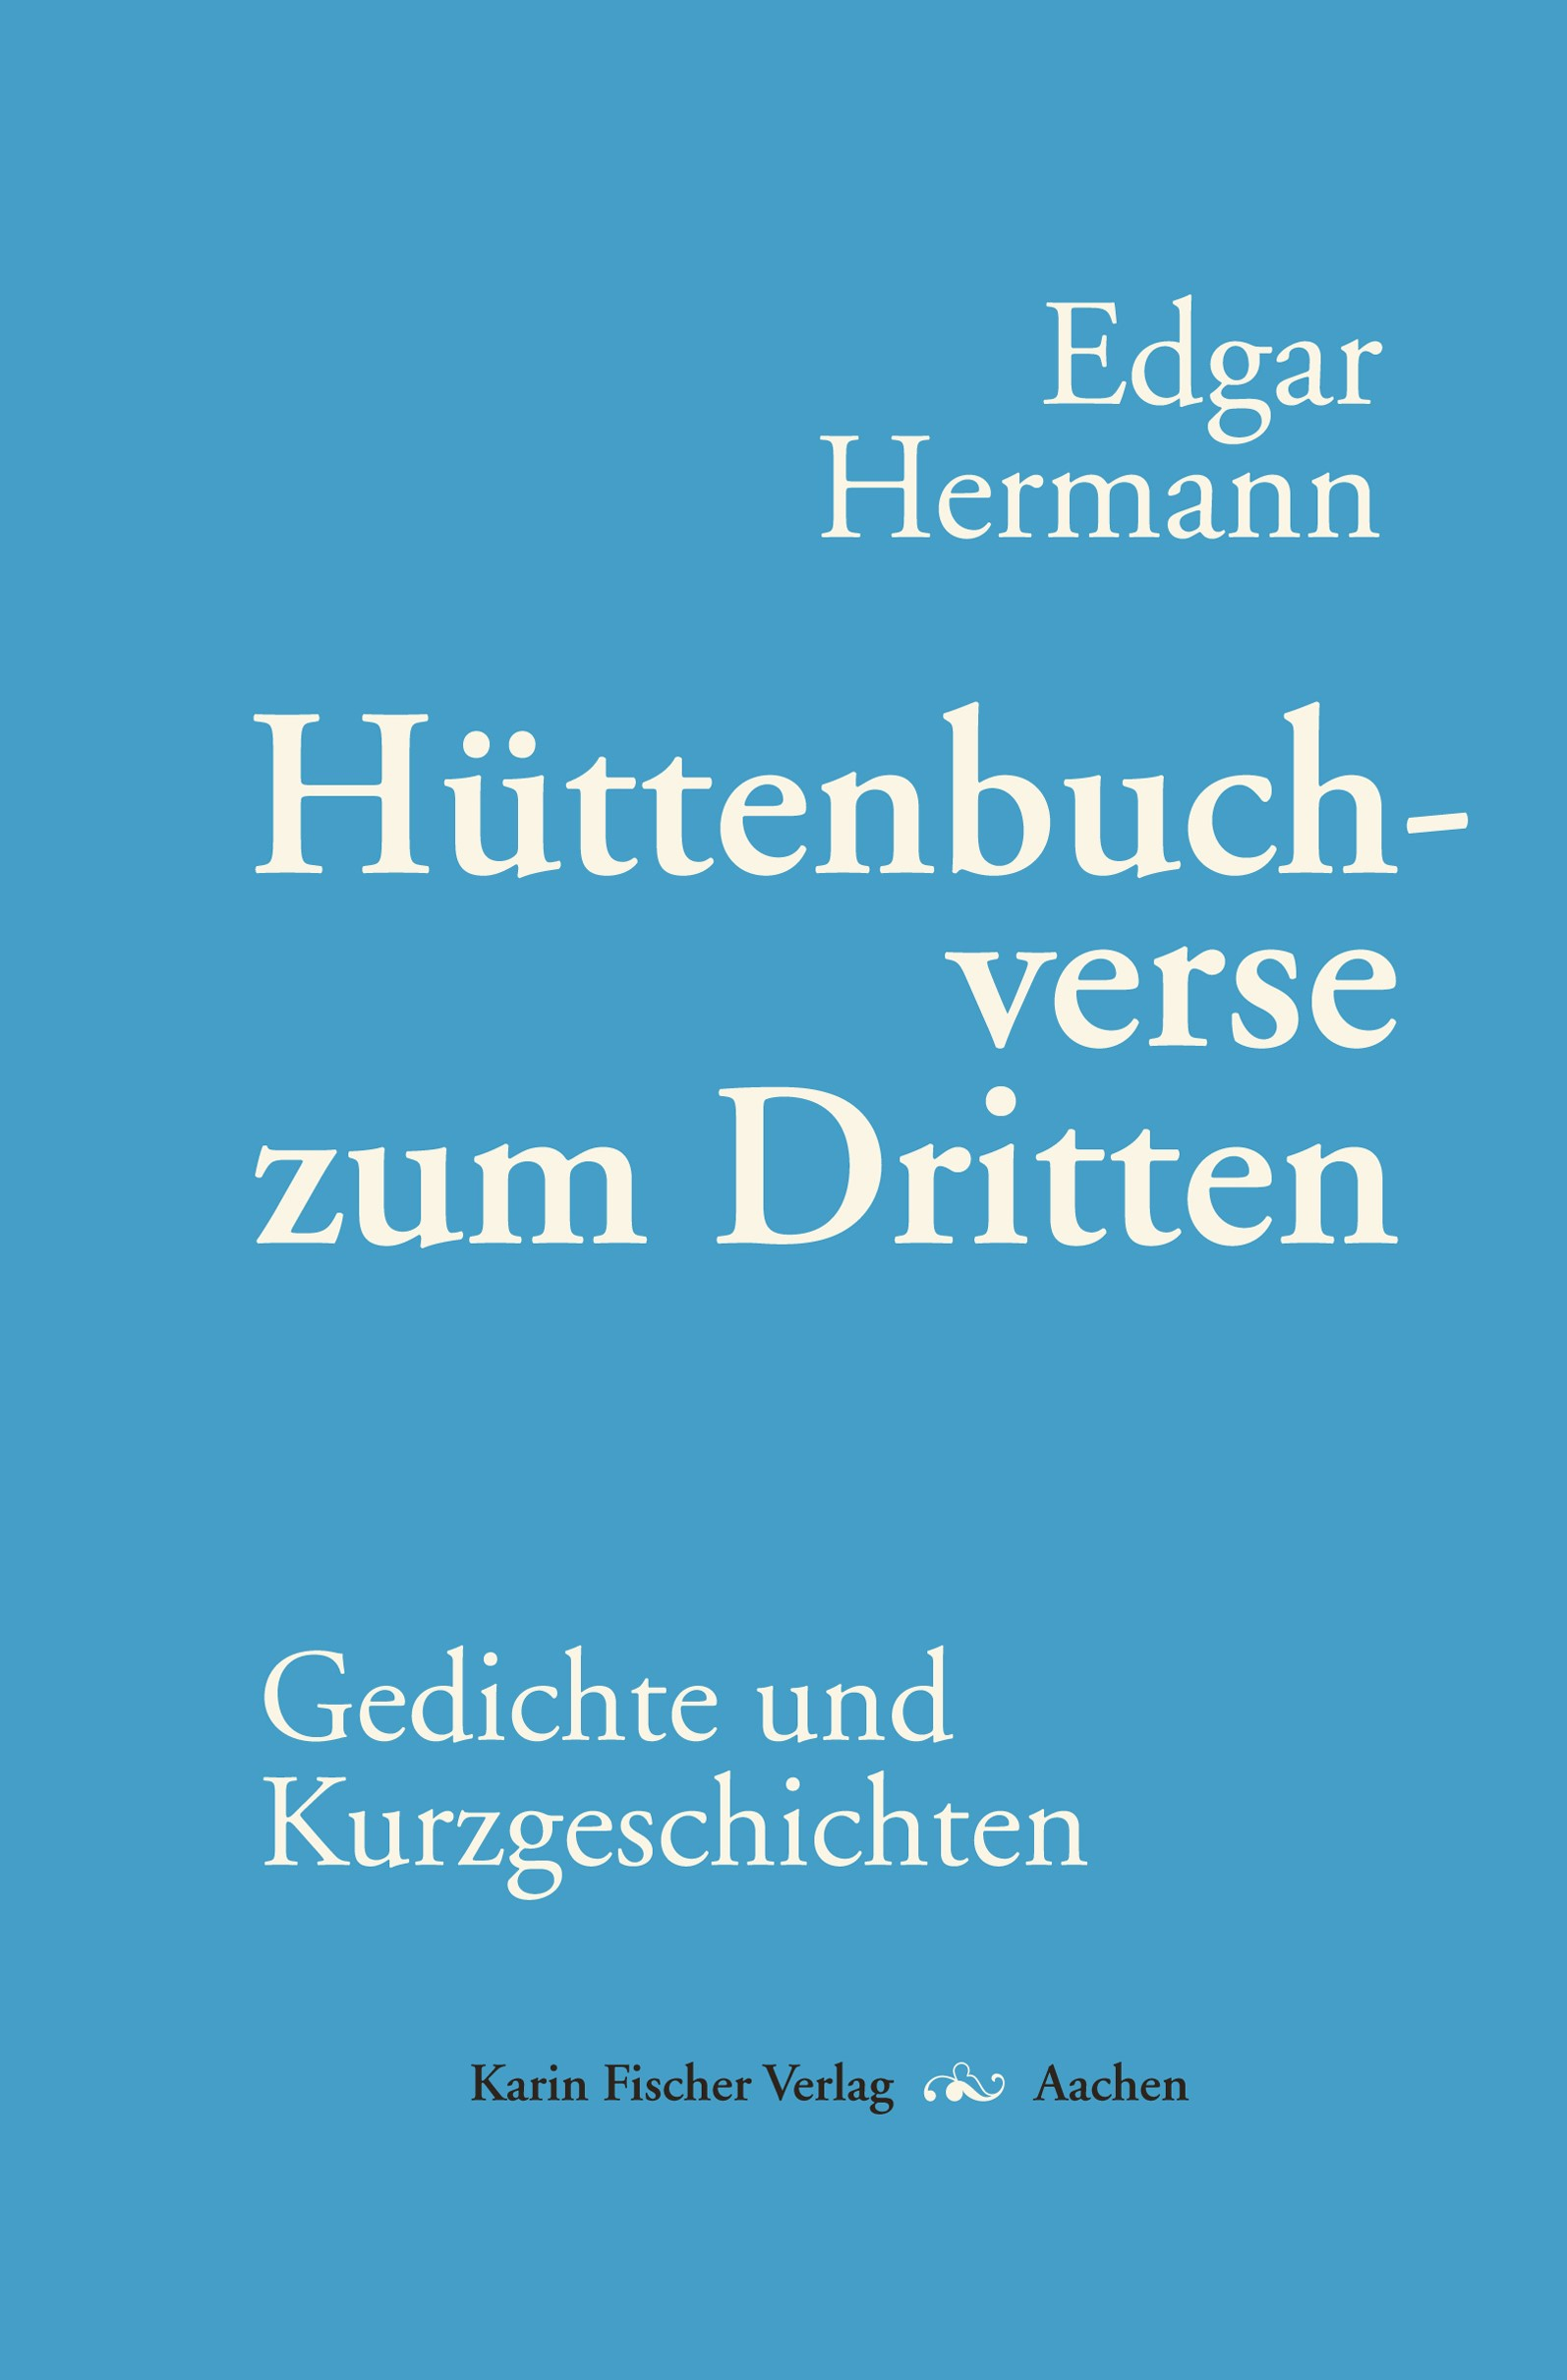 image-9228368-Cover_Buch3.jpg